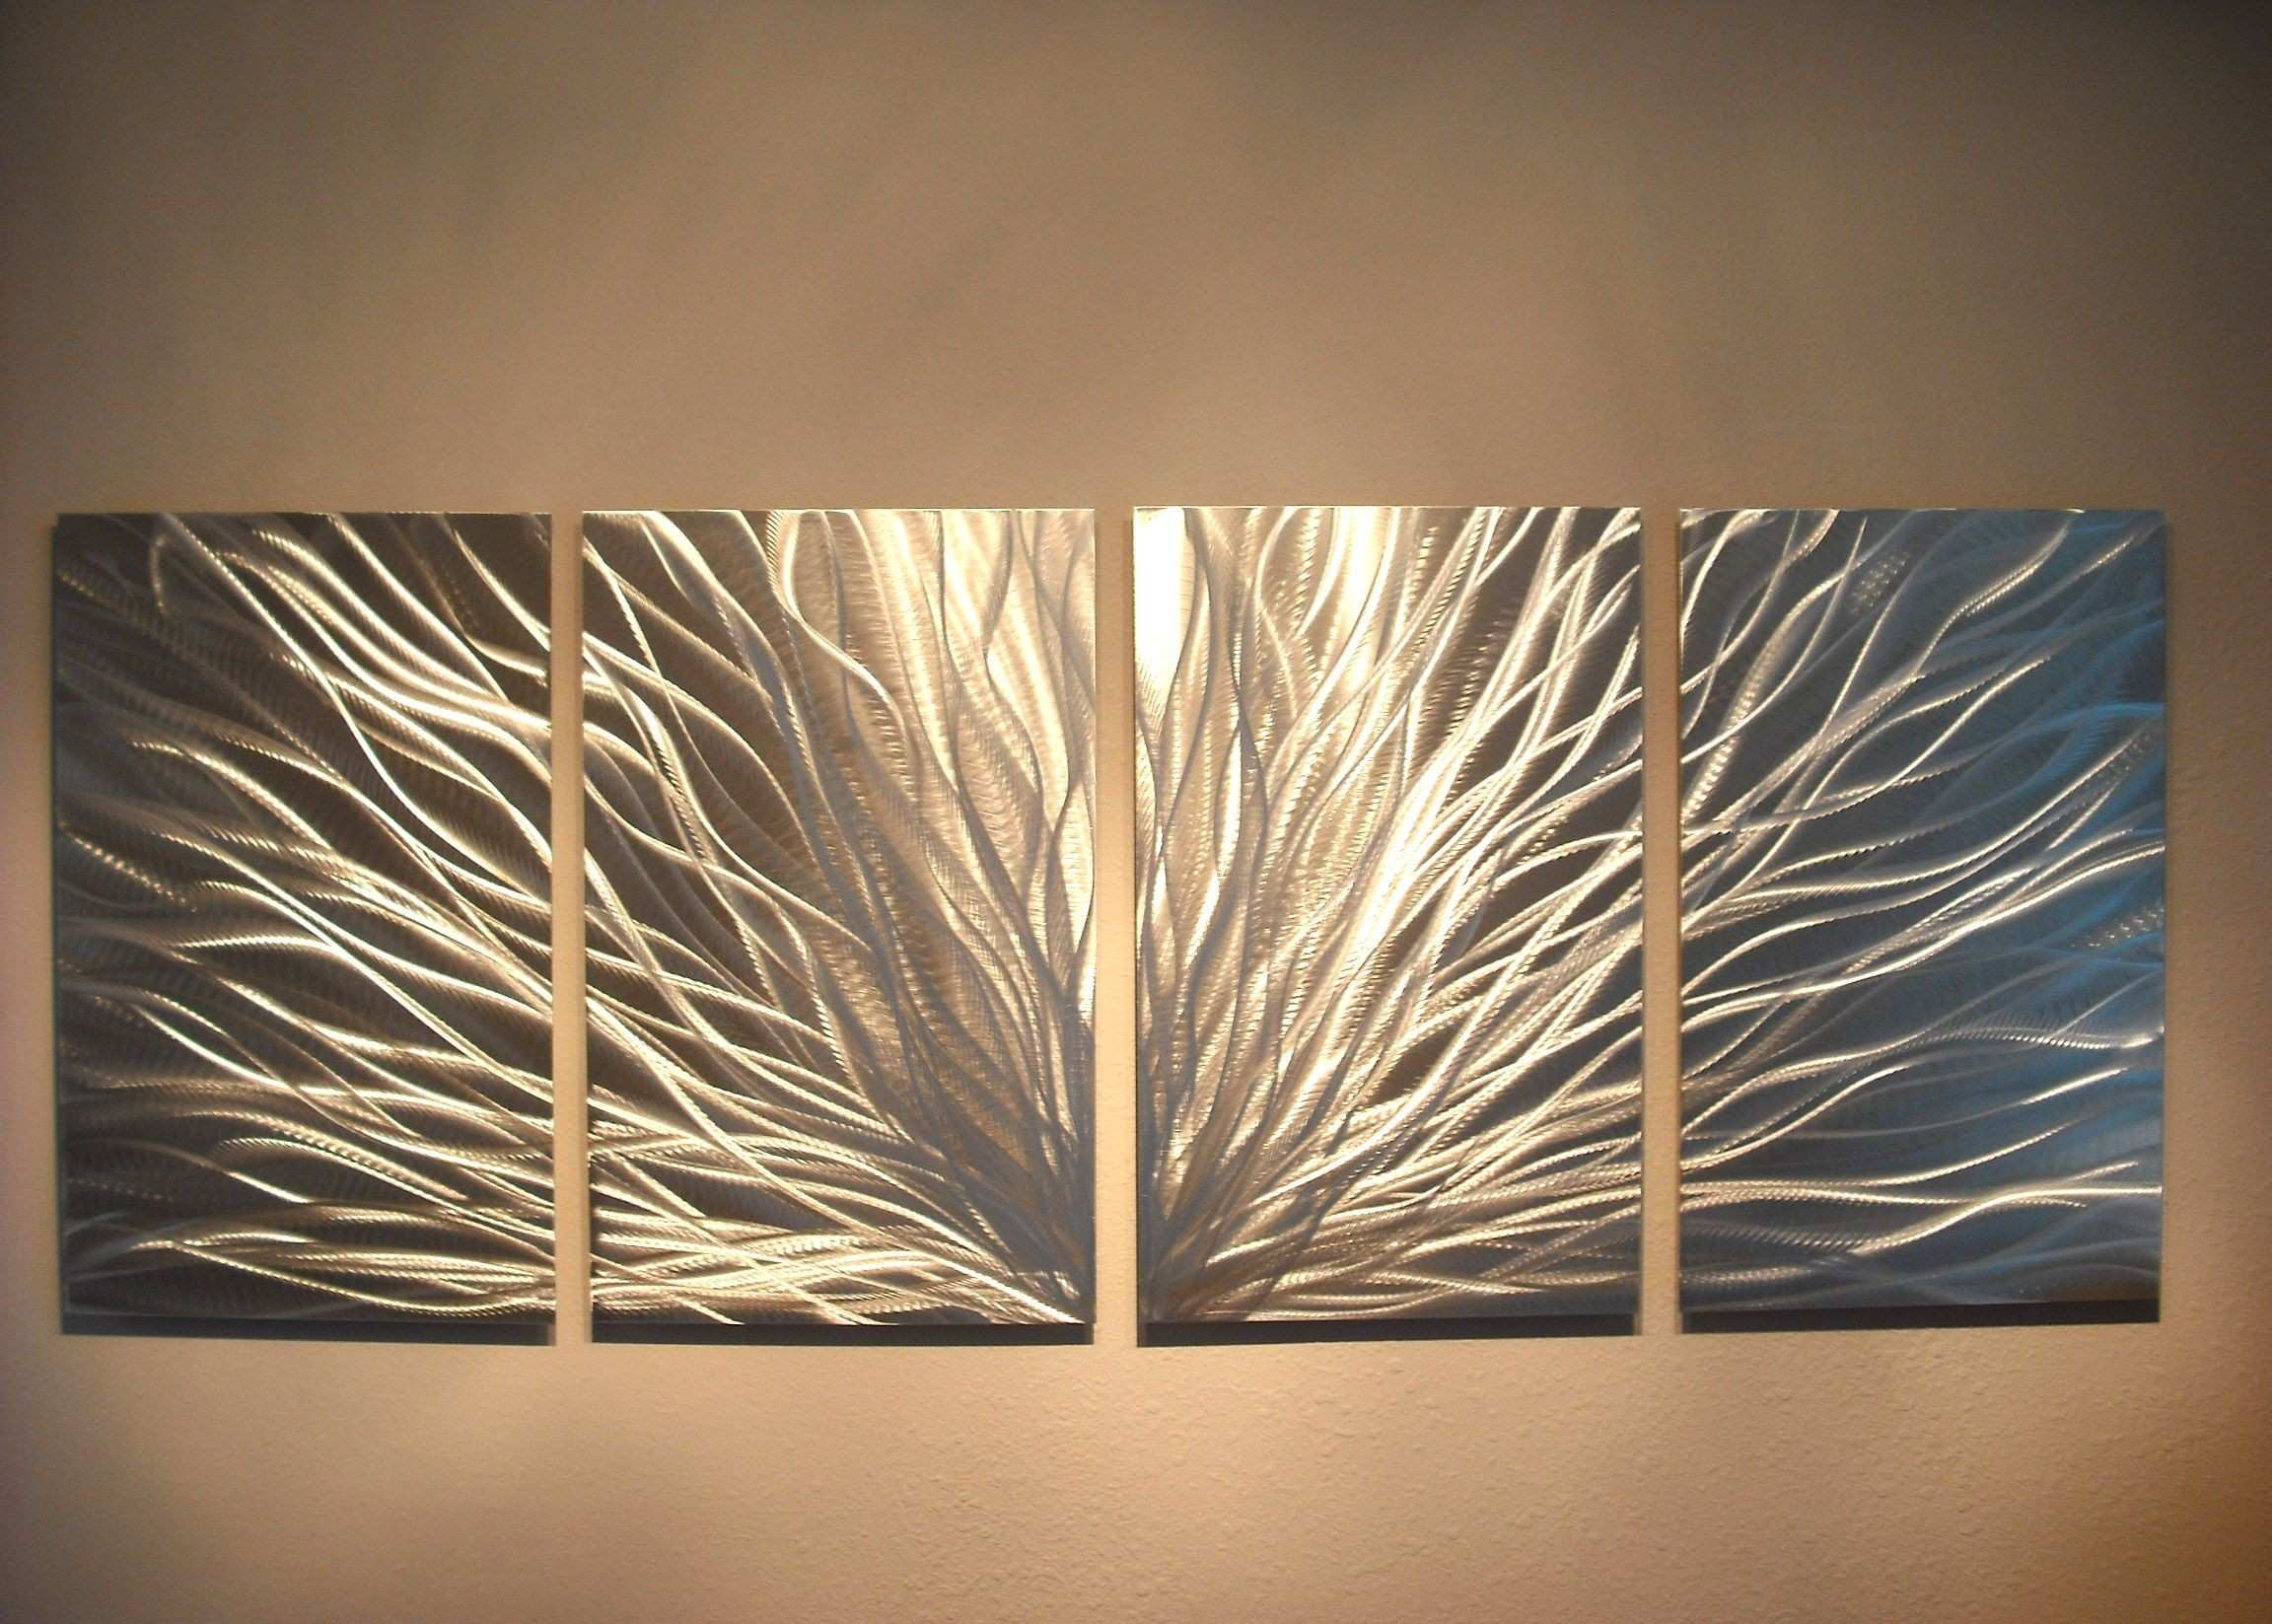 Metal Wall Art Contemporary Modern Abstract Decor Radiance Silver